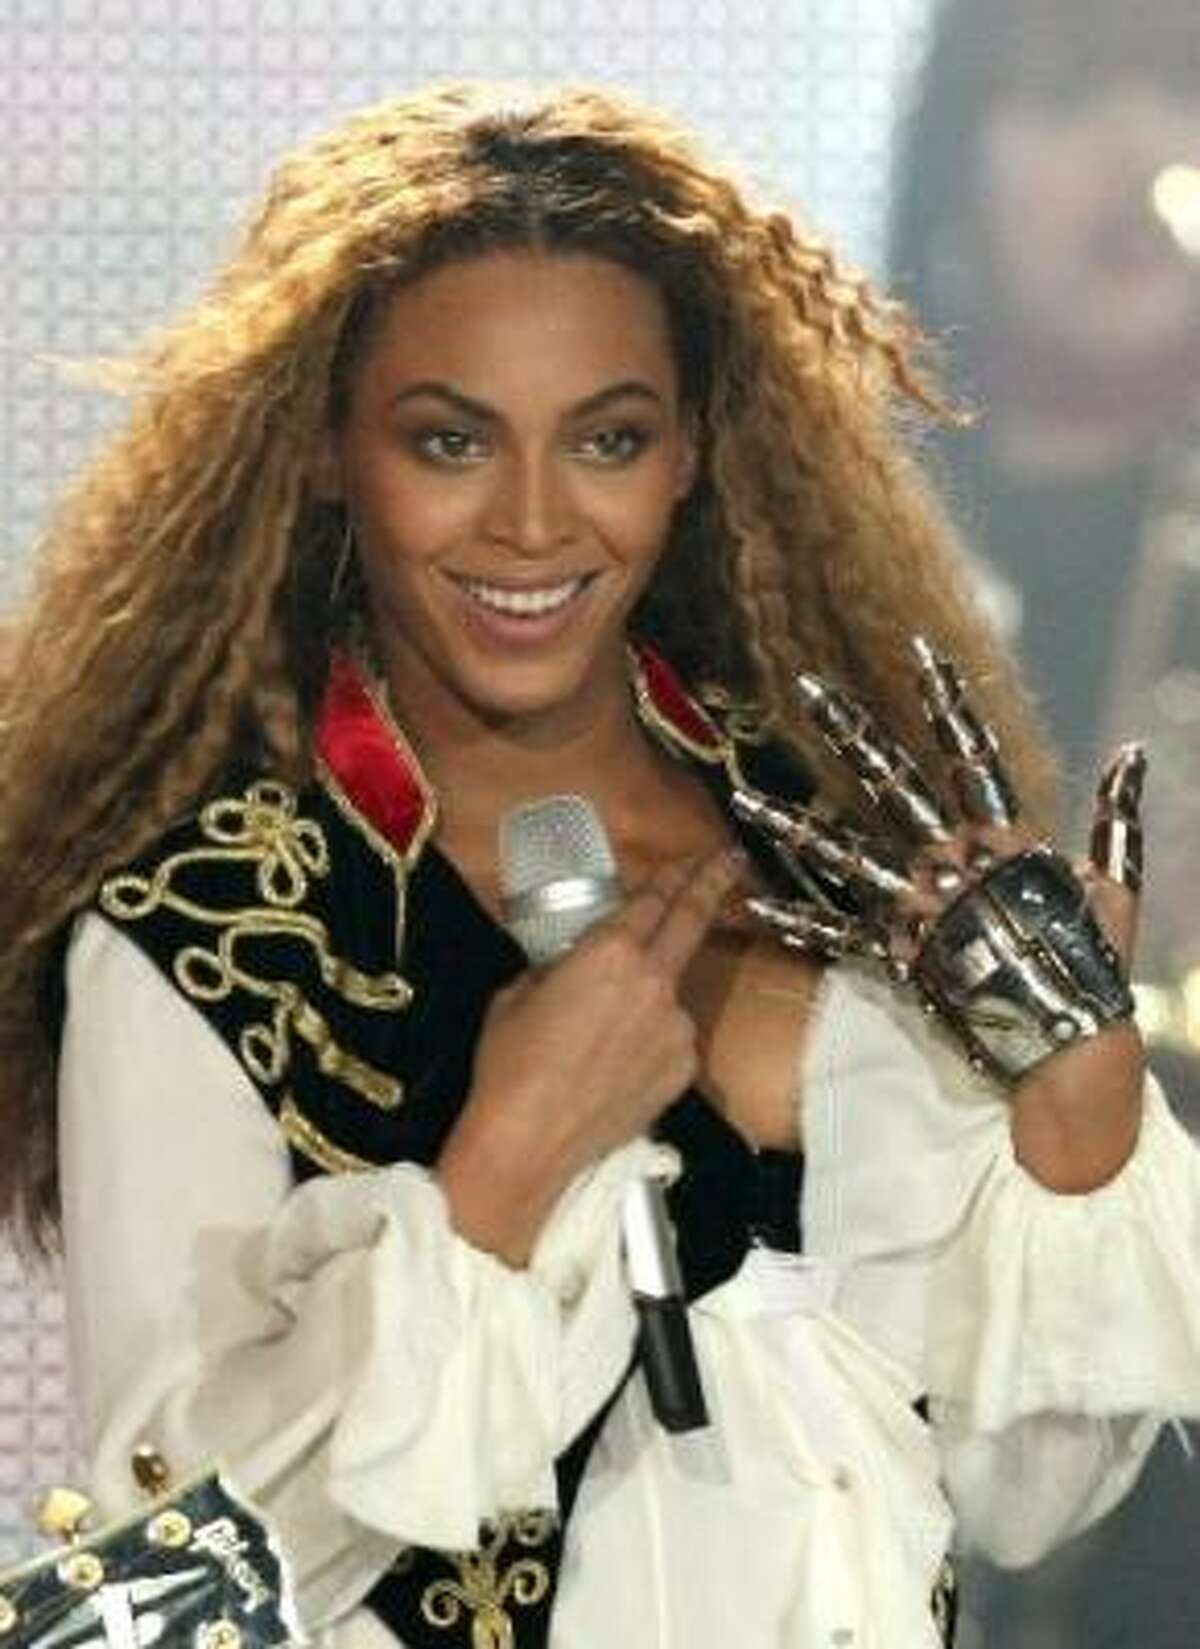 Beyonce at the 2008 World Music Awards ceremony in Monaco.